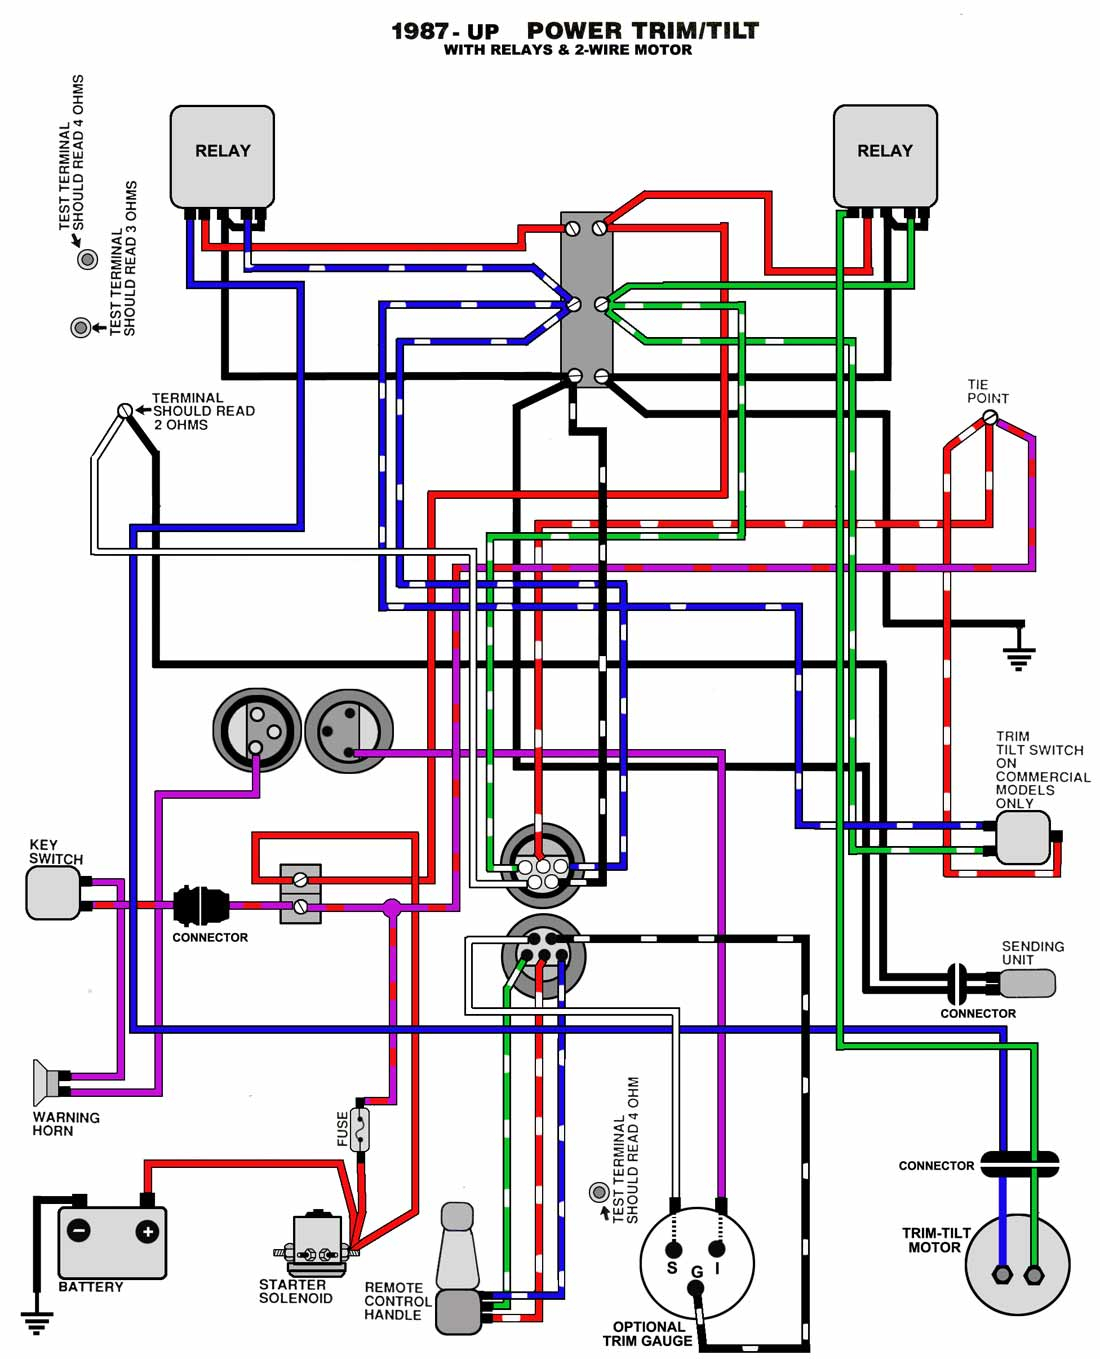 Omc Schematic Diagrams Simple Wiring Diagram Schema Pollak Ignition Switch  Wiring Diagram Evinrude Omc Ignition Switch Wiring Diagram